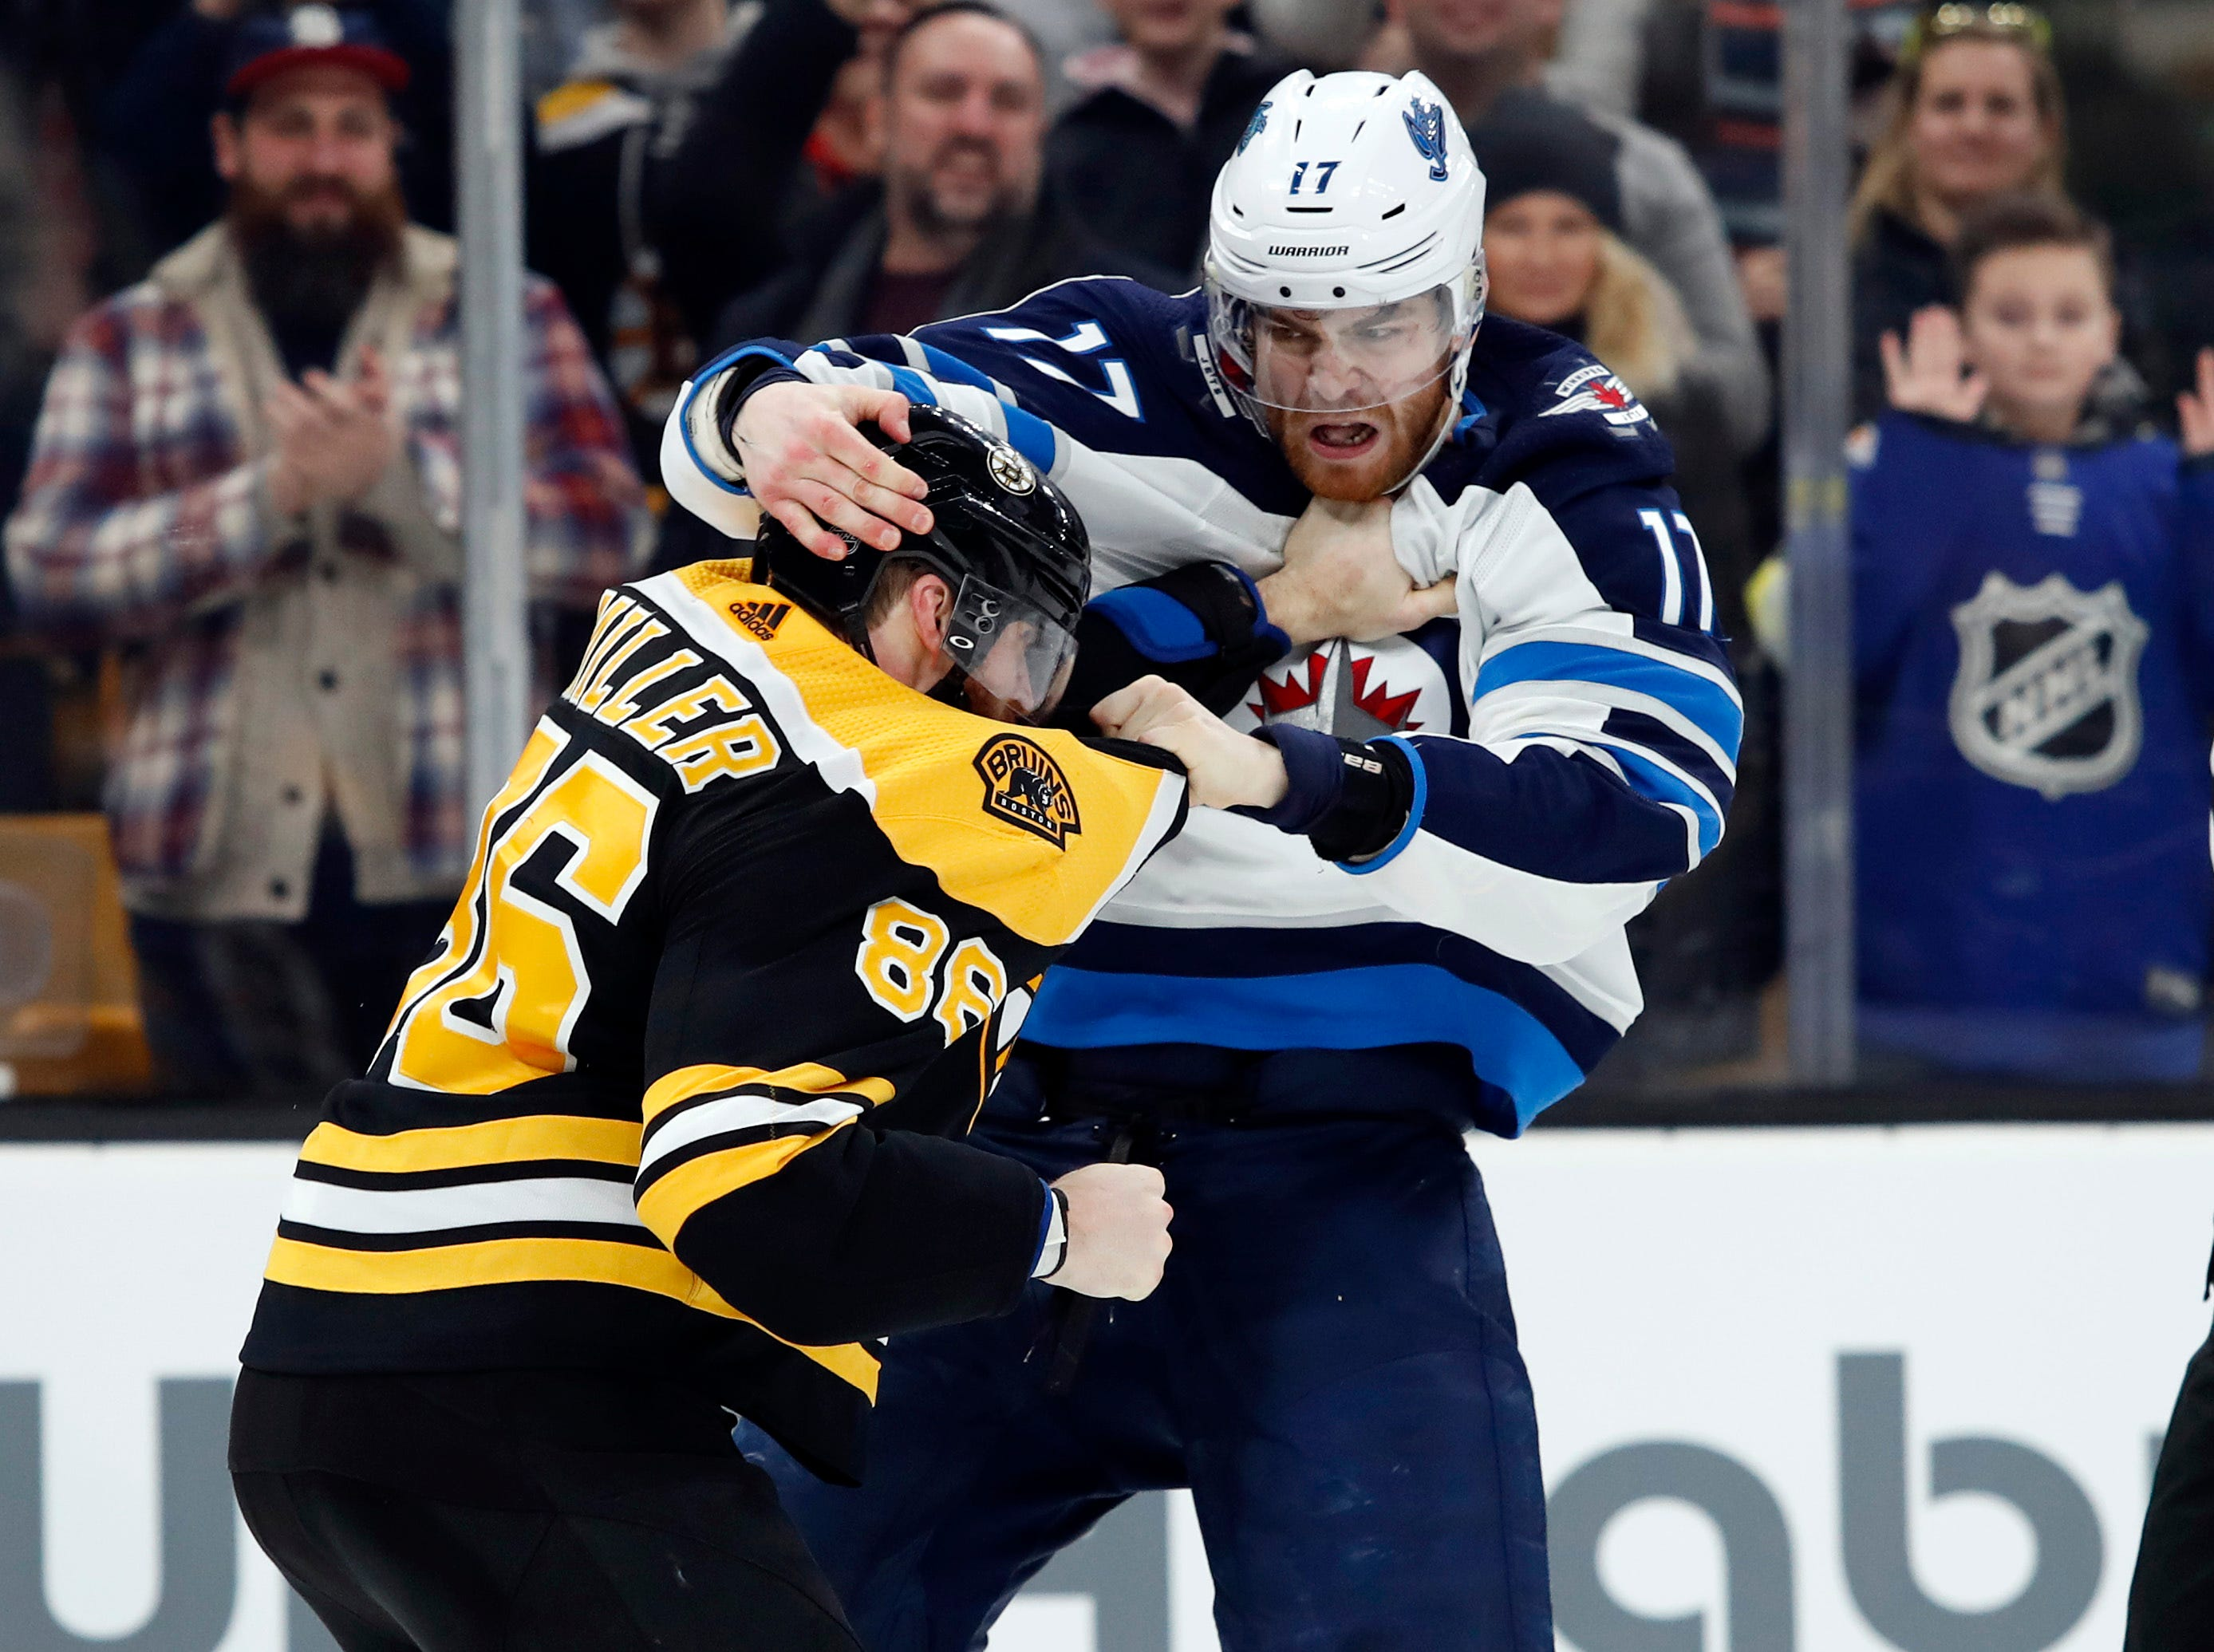 Jan. 29: Boston Bruins' Kevan Miller vs. Winnipeg Jets' Adam Lowry.